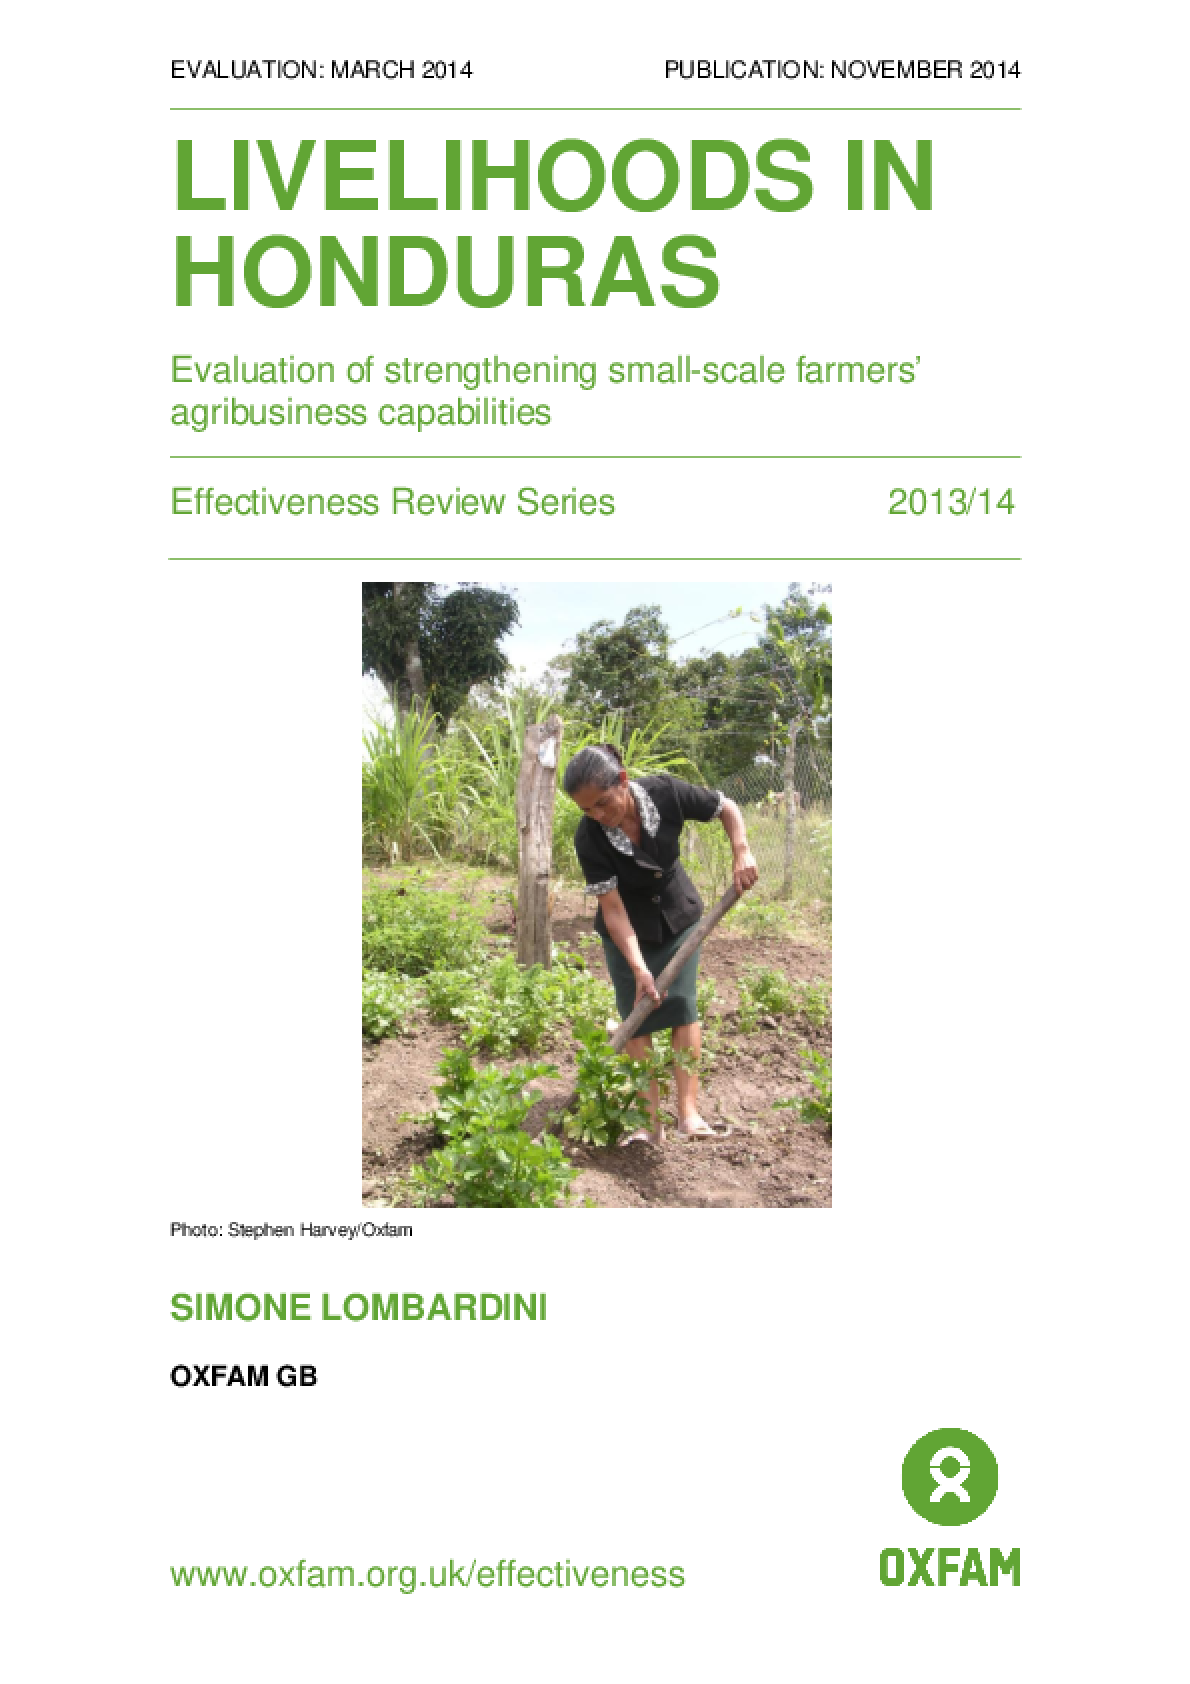 Livelihoods in Honduras: Evaluation of strengthening small-scale farmers' agribusiness capabilities